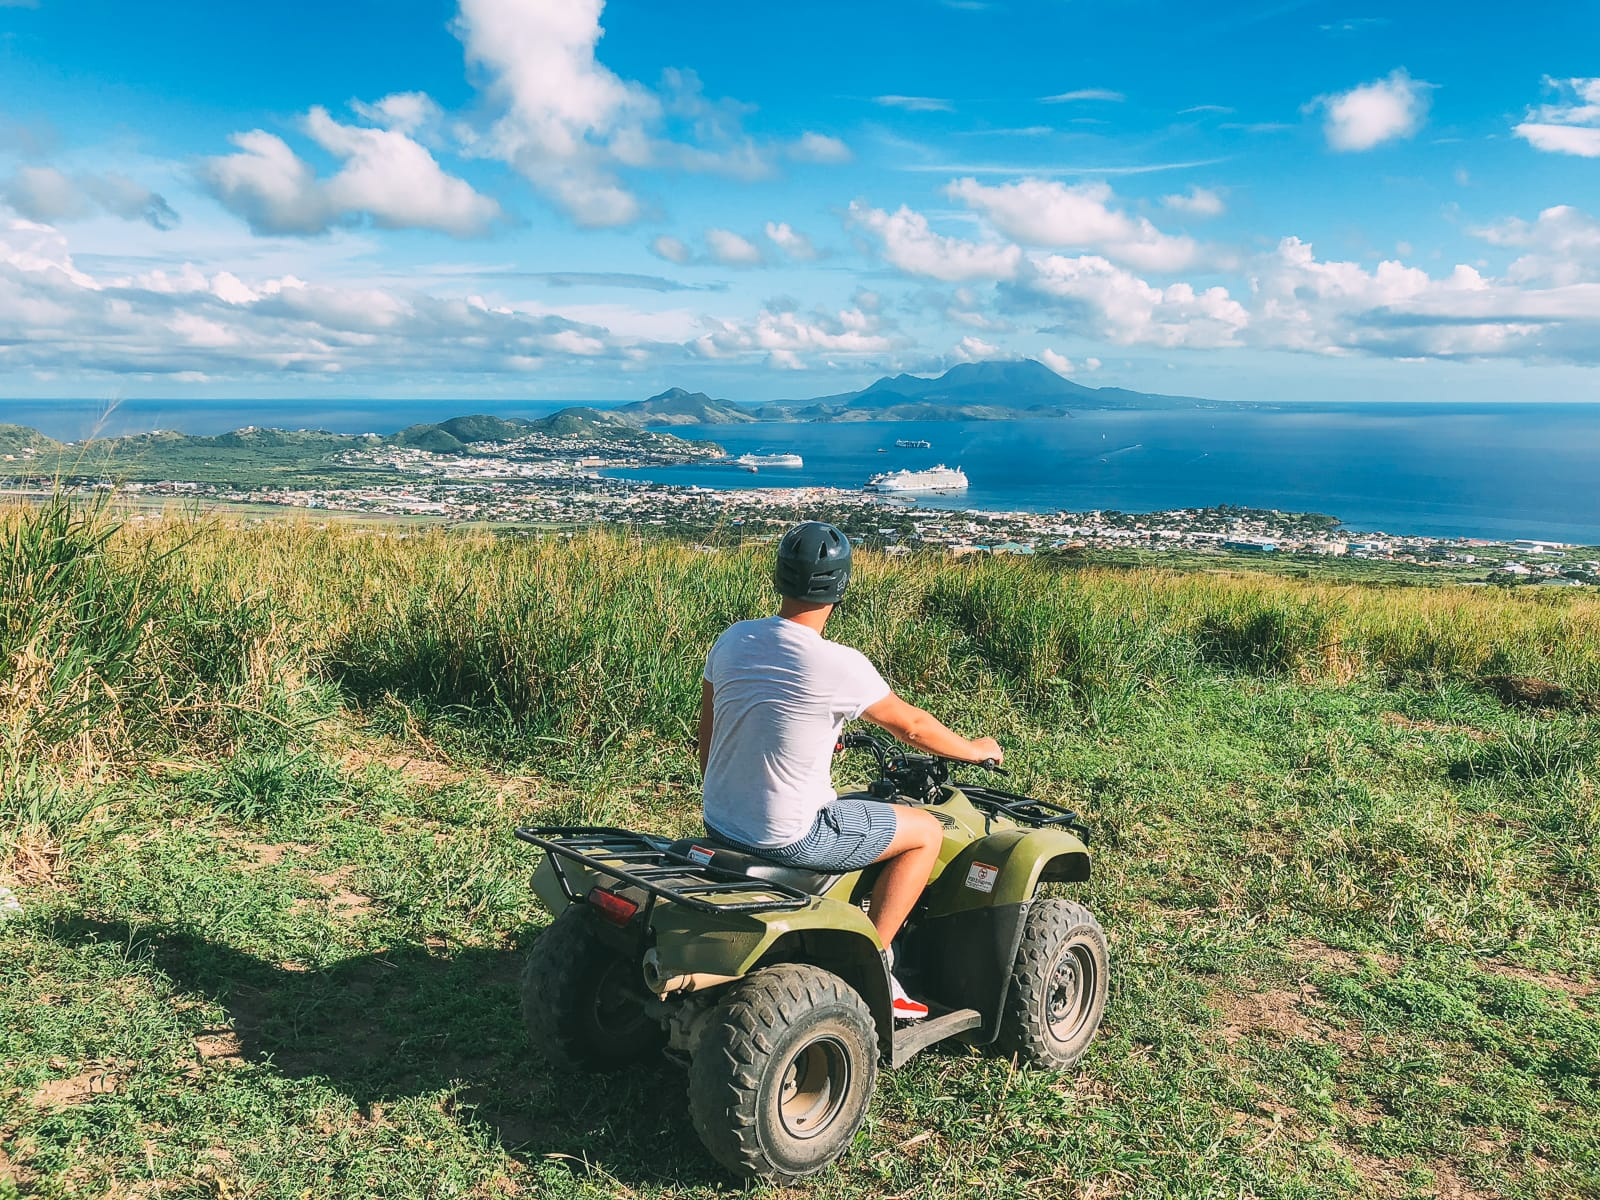 Afternoons In Basseterre And Off-Roading In The Rainforest... In St Kitts, The Caribbean (40)